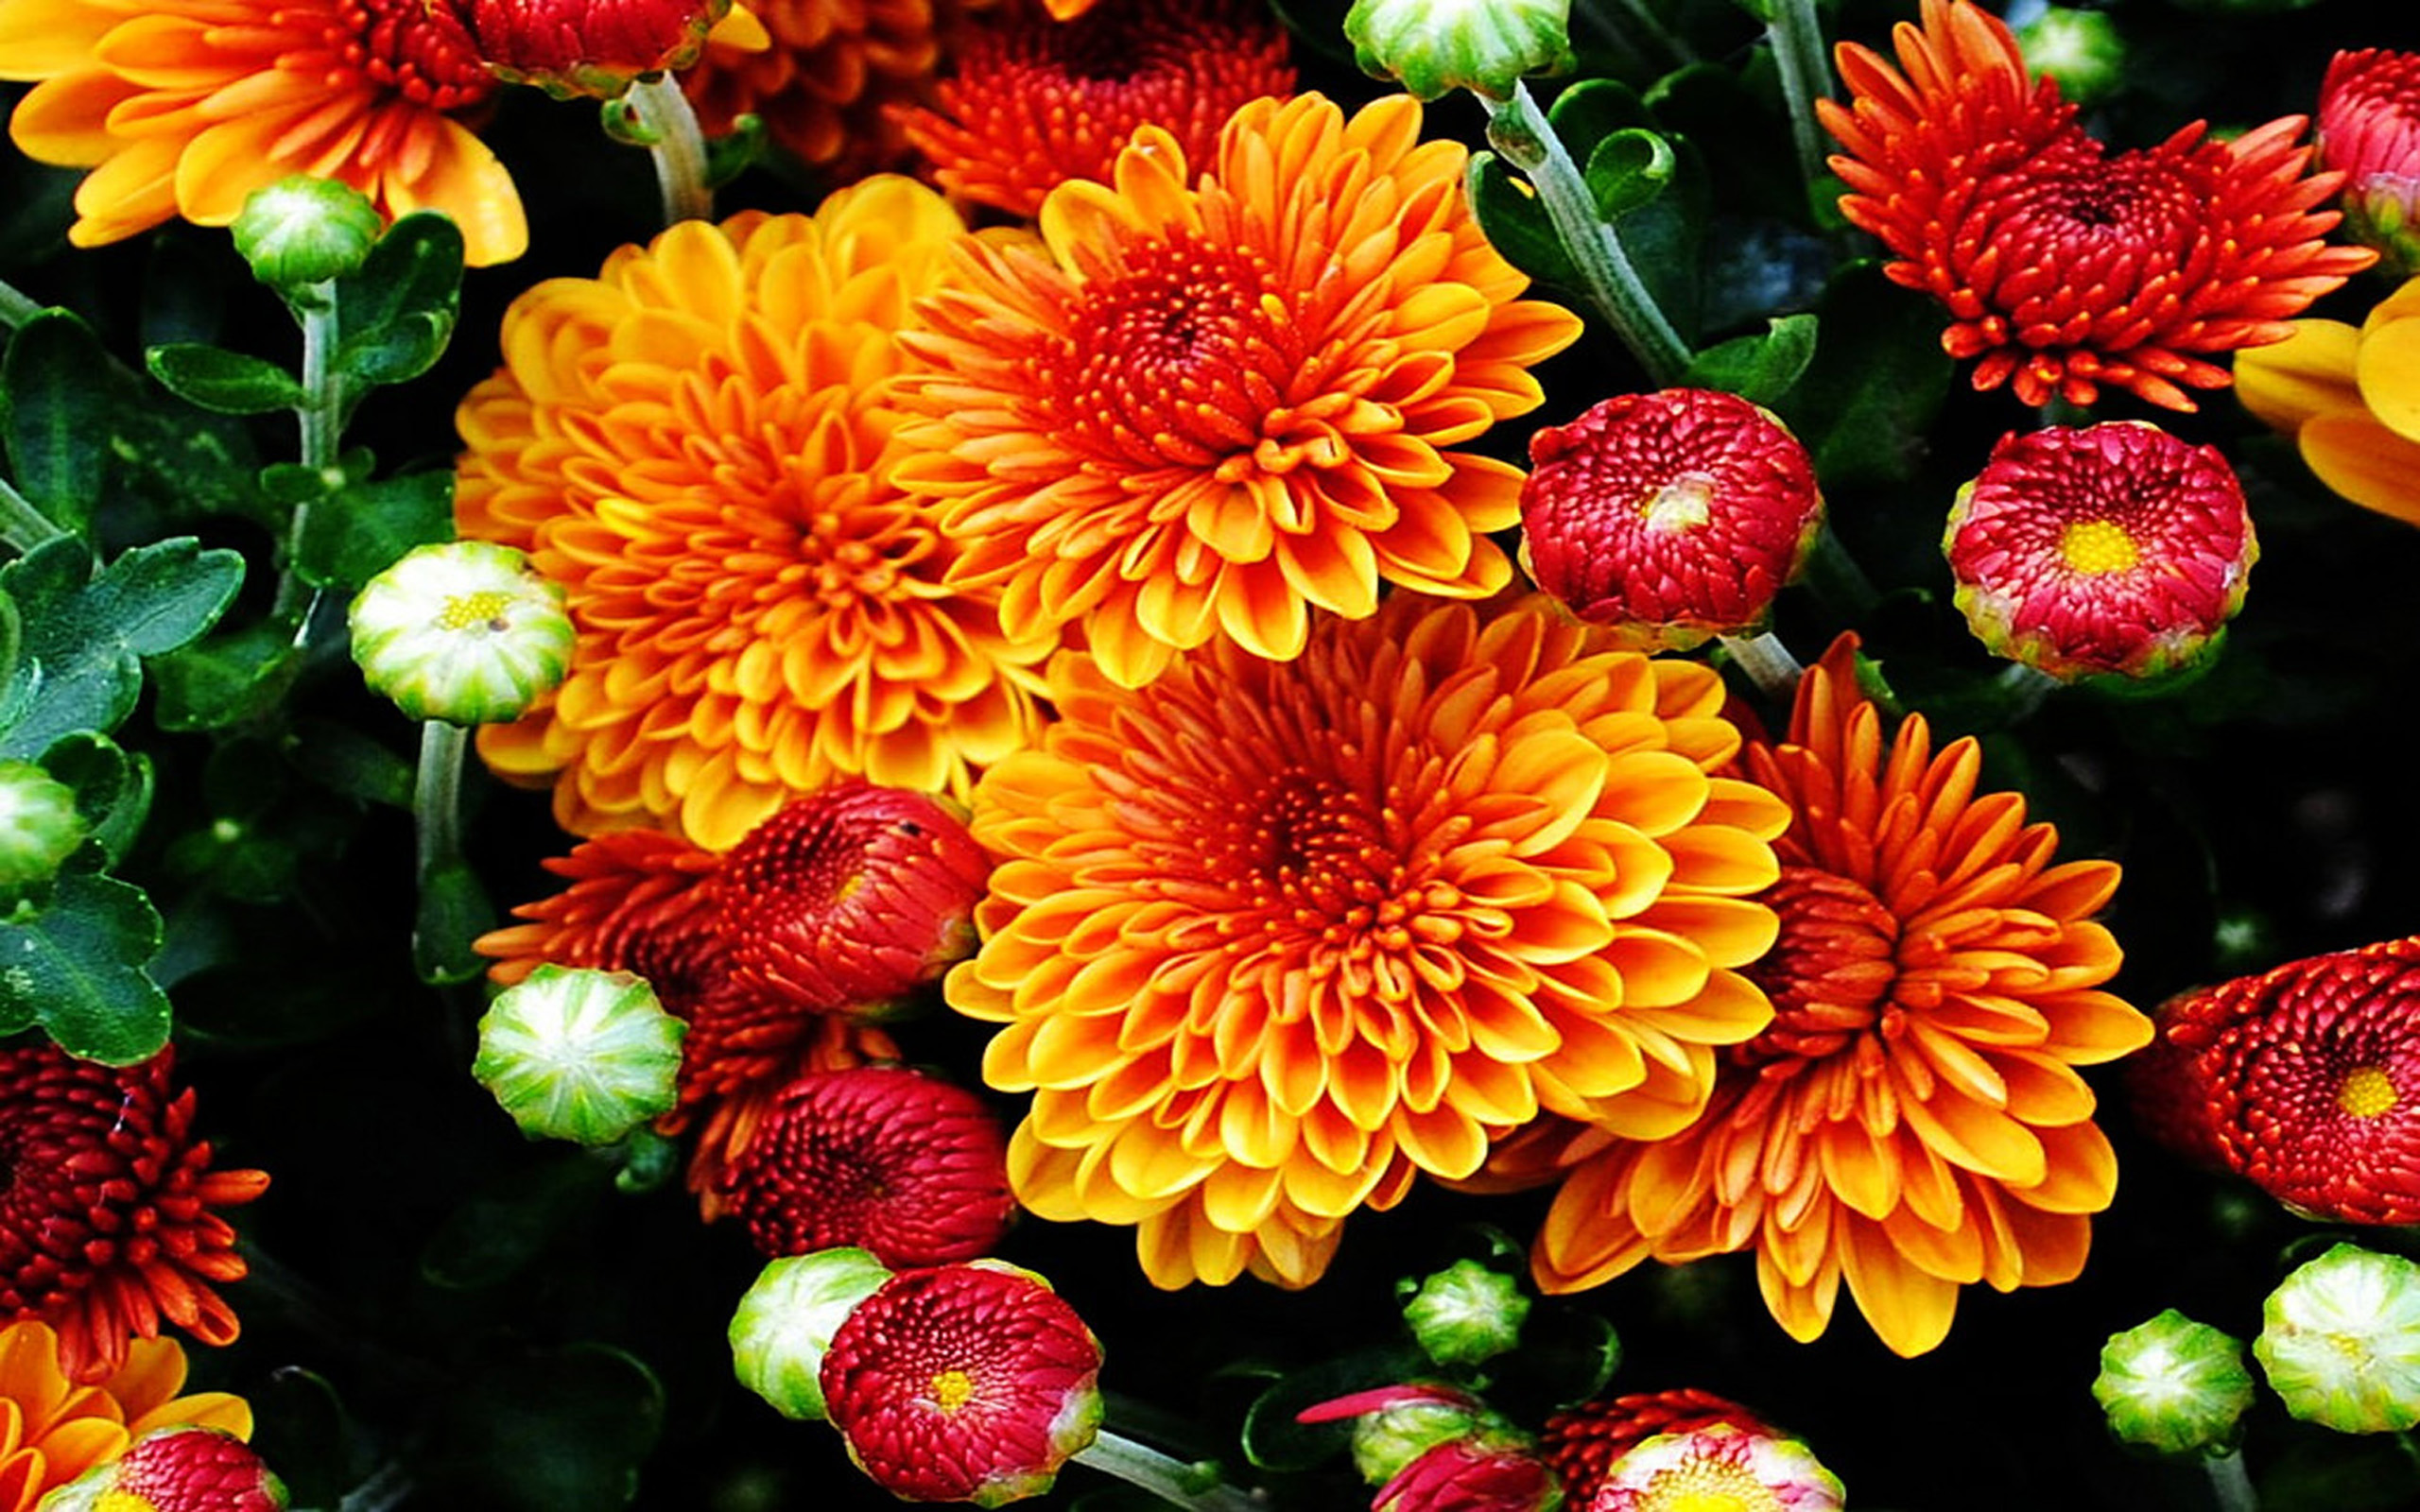 Cute Fruit Wallpaper For Android Fall Mums Colored Flowers From The Garden With A Beautiful